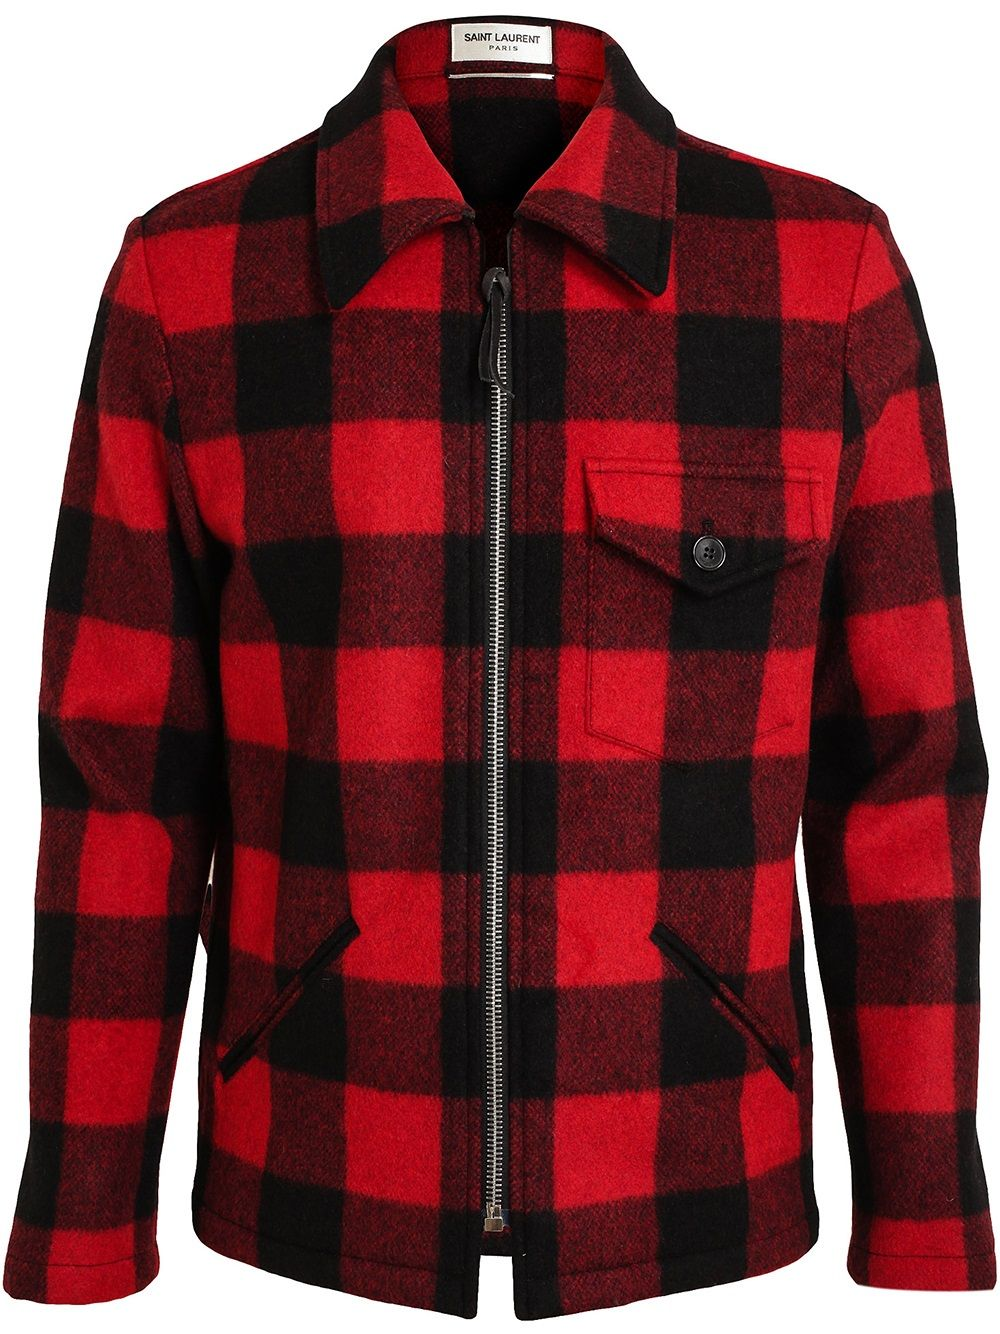 901381c29a2d Saint Laurent Tartan Wool Worker Jacket - Browns - Farfetch.com ...